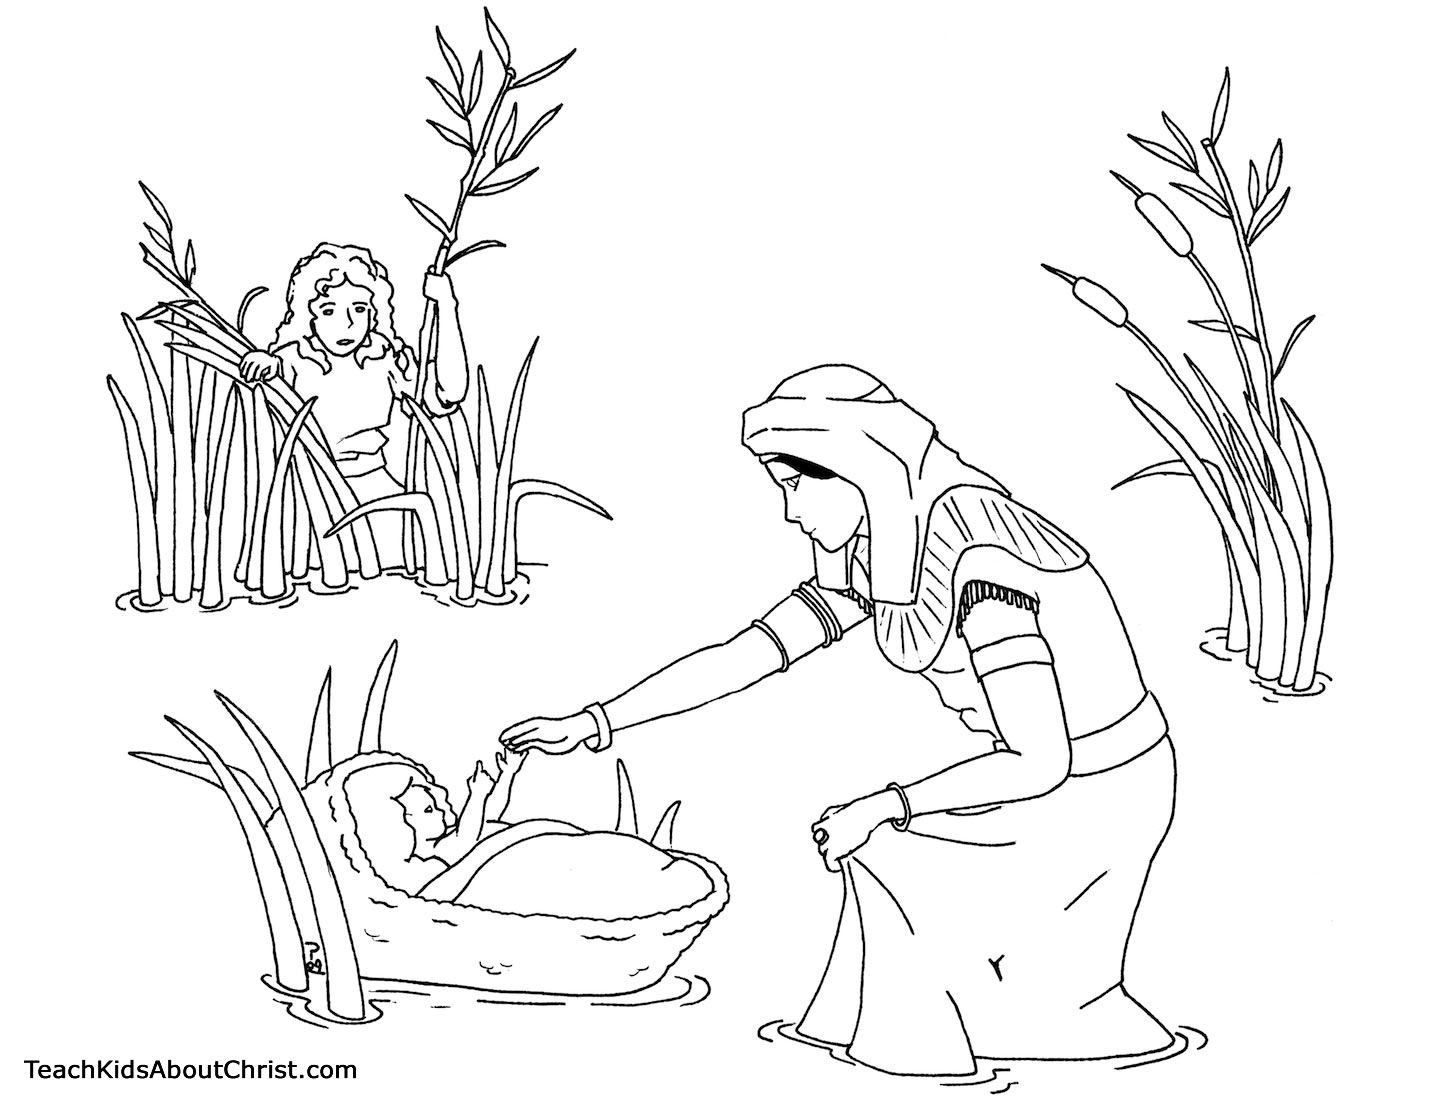 Coloring pages bible stories preschoolers - Coloring Page Of Baby Moses Basket On The Picture And Then Print It You